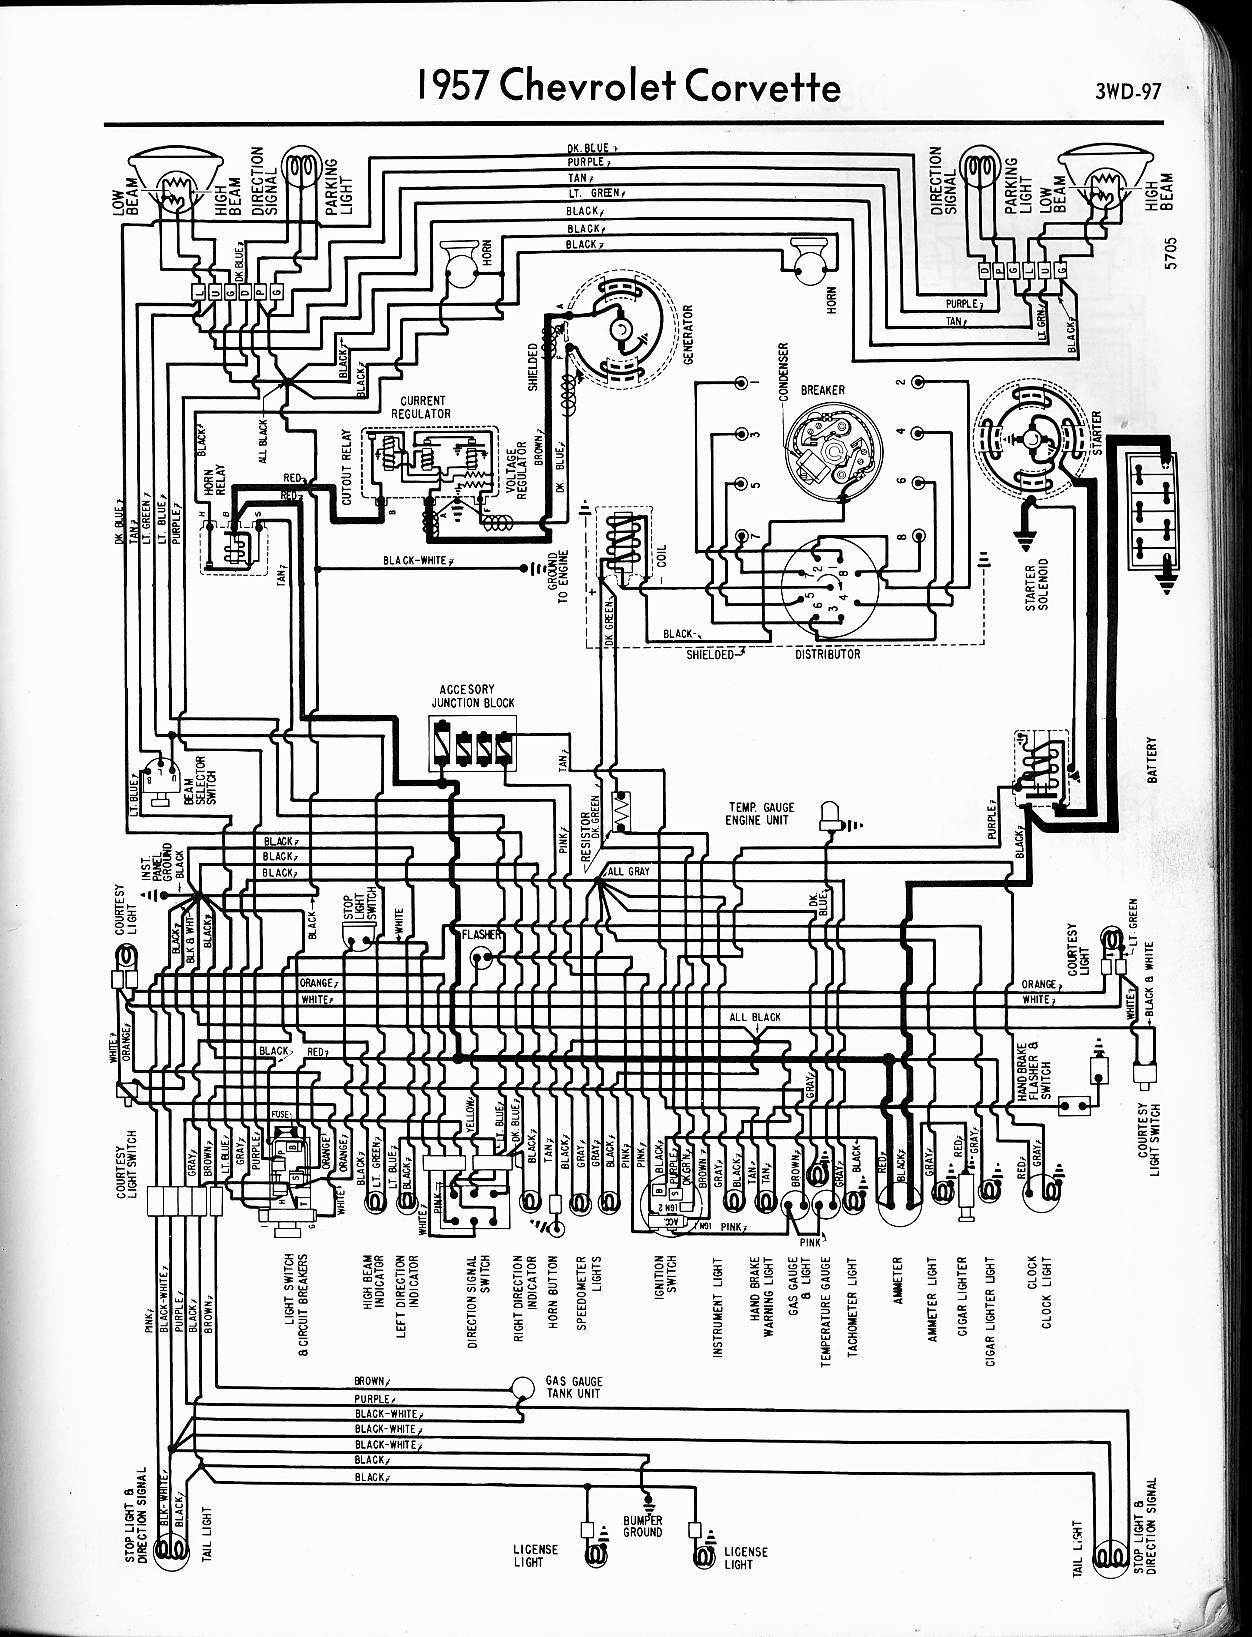 1955 chevy fuse box diagram catalogue of schemas chevy trucks fuse box wiring diagram